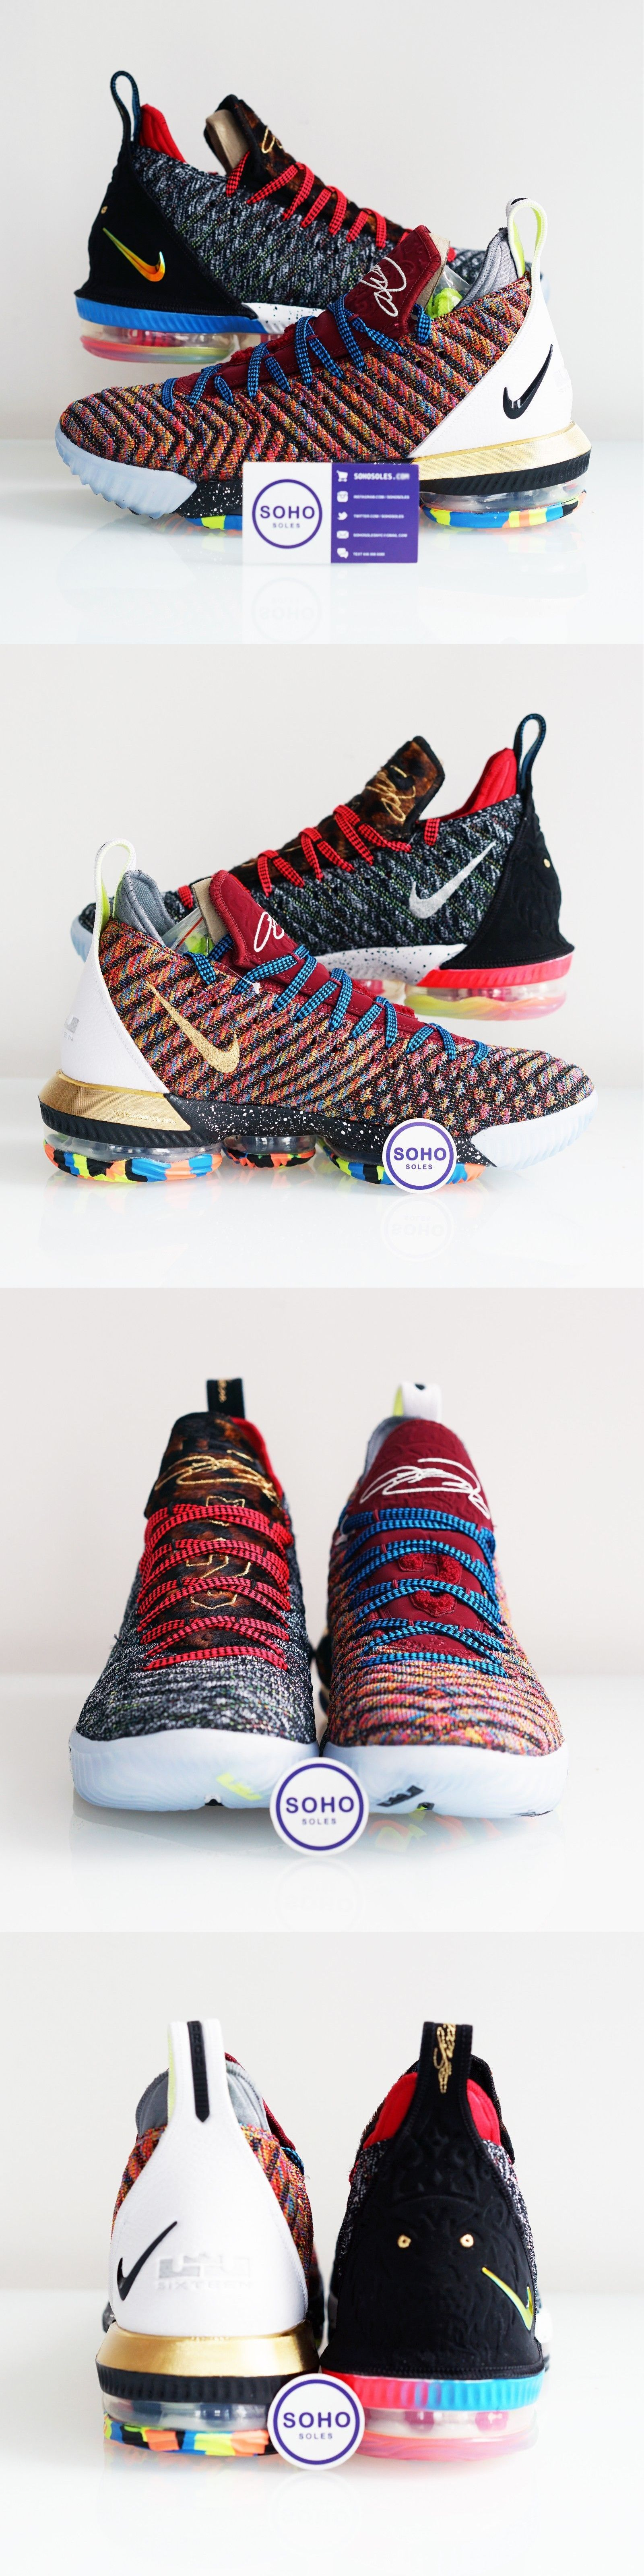 45a495d5067cc Mens Shoes 93427  Nike Lebron Xvi 16 Lmtd What The 1 Thru 5 Bq6580-900 Size  8-13 Ships Now -  BUY IT NOW ONLY   338.88 on eBay!